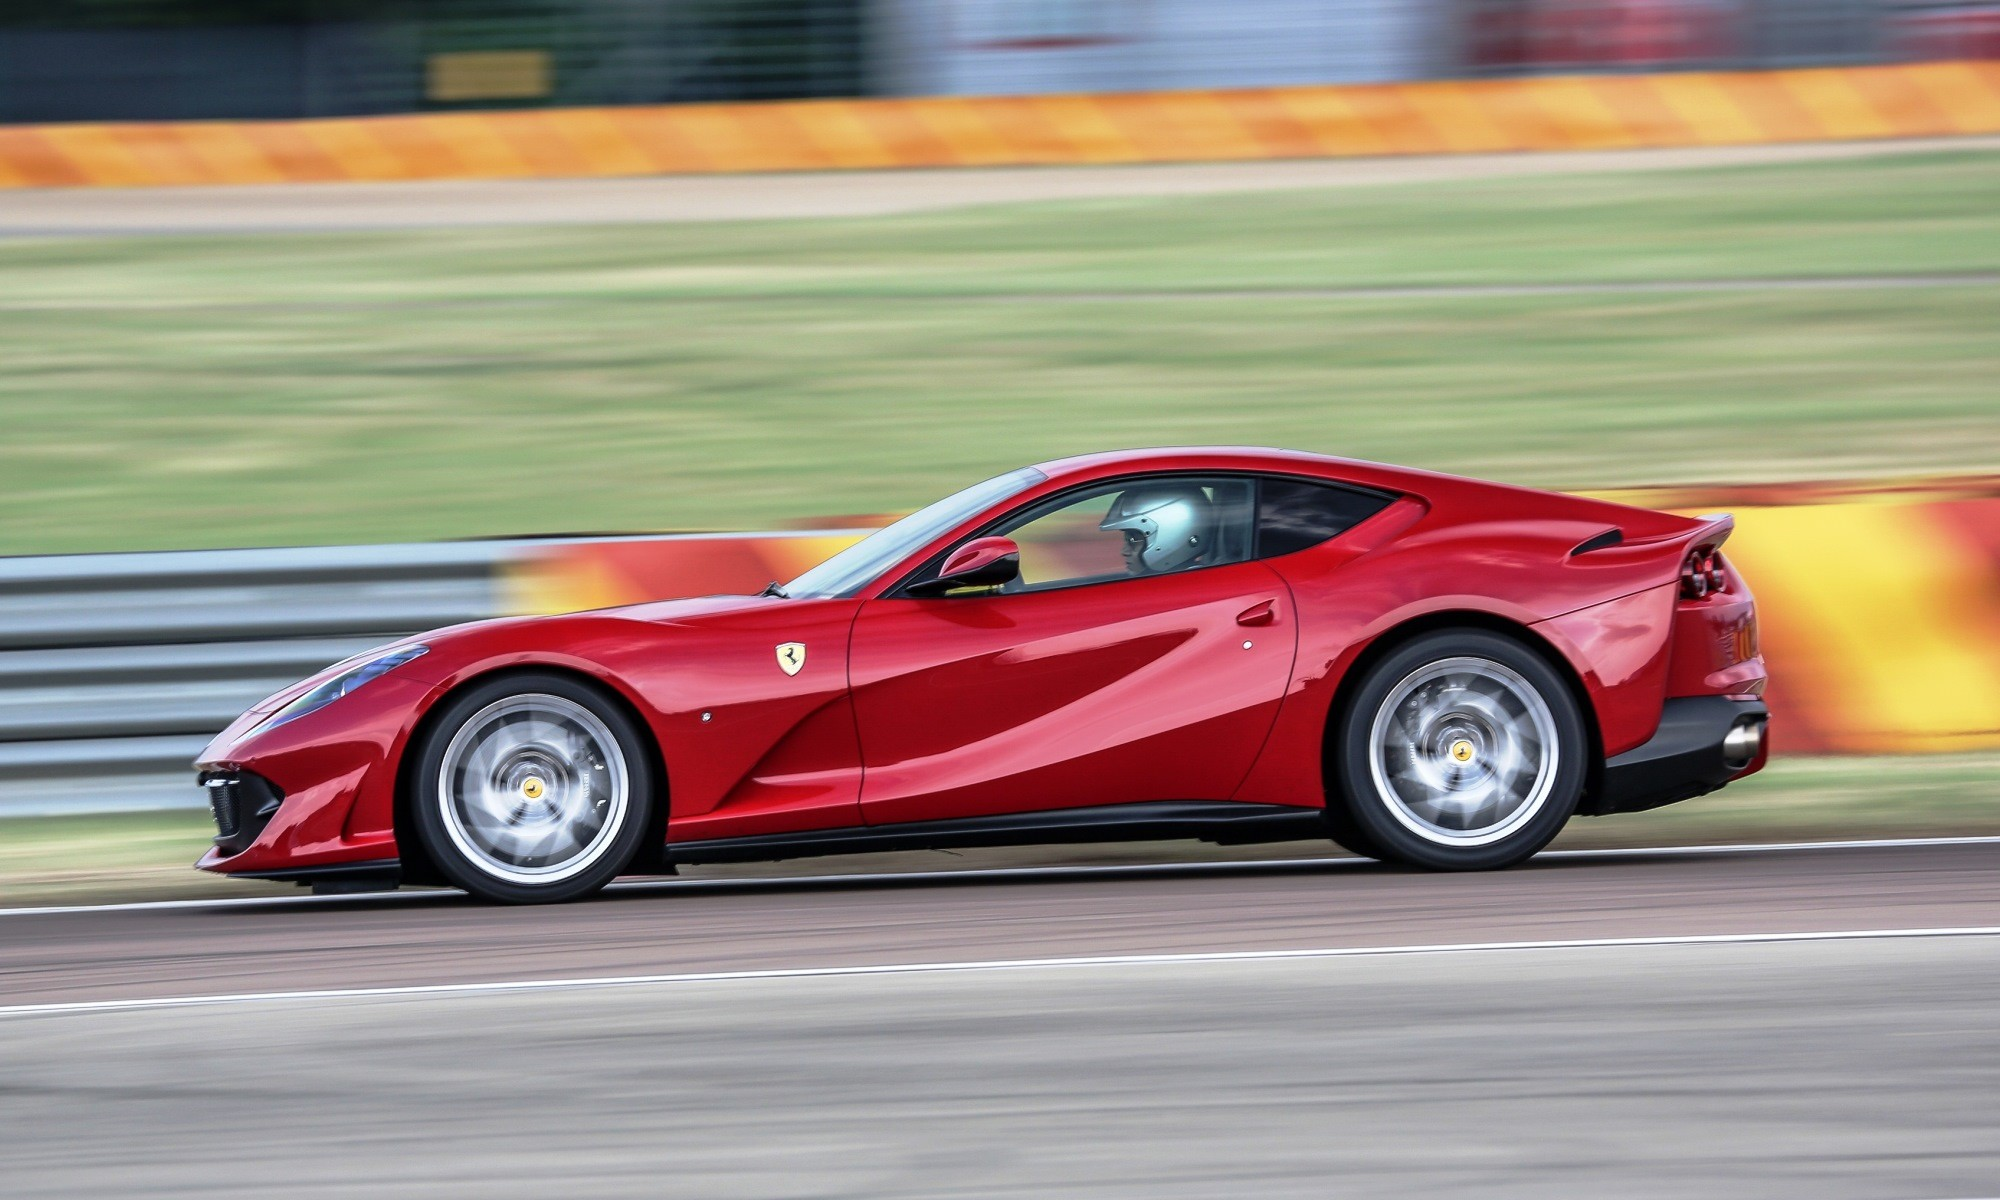 Ferrari 812 SuperFast in action at Fiorano